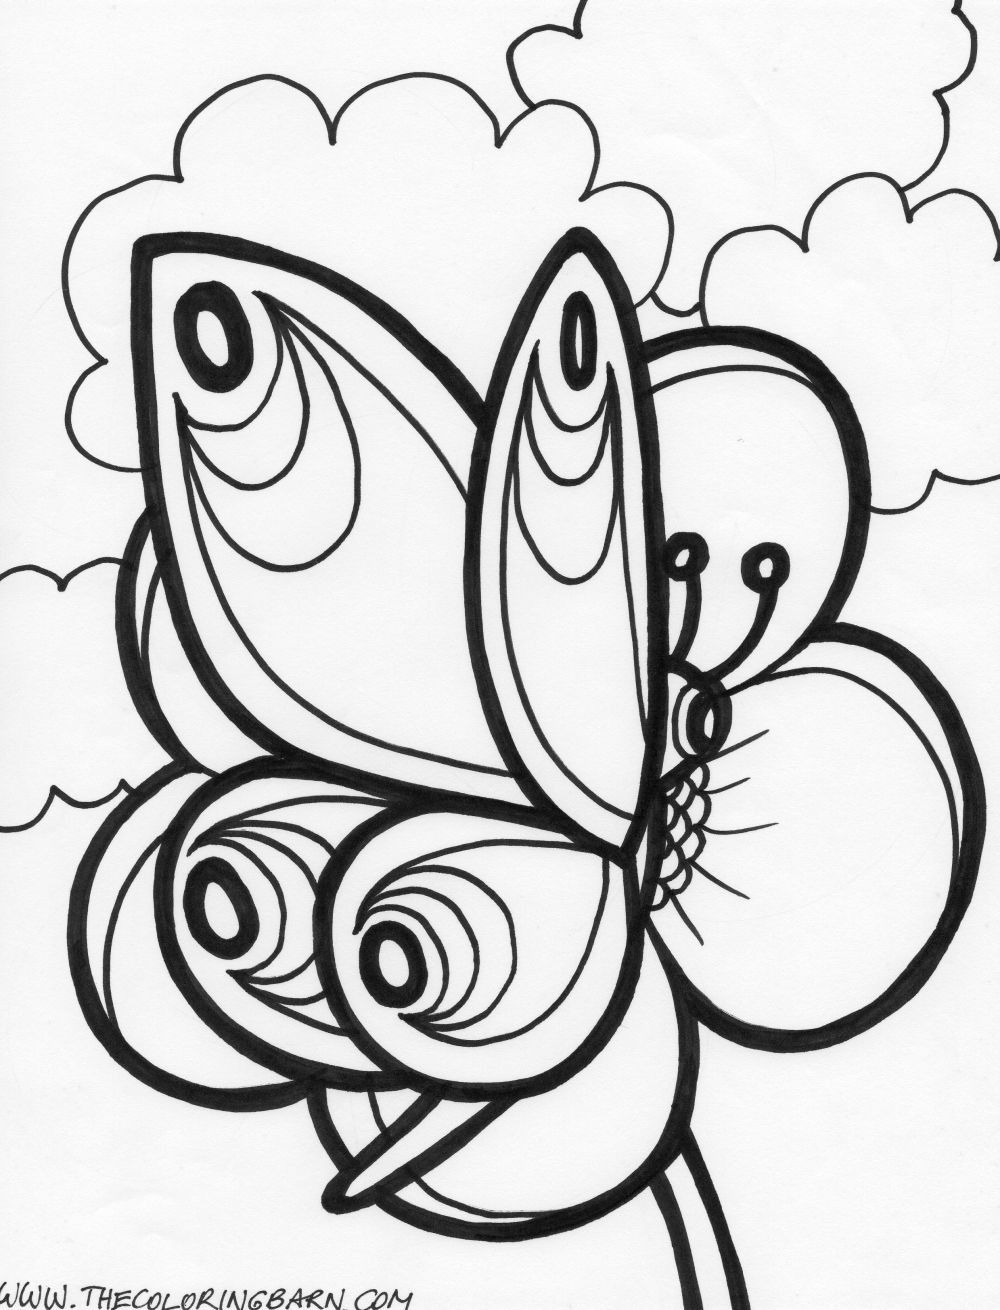 Butterfly Coloring Pages For Kids Cute Butterfly Coloring Pages Auromas Of 50 Free Printable Butte In 2020 Butterfly Coloring Page Flower Coloring Pages Coloring Pages [ 1310 x 1000 Pixel ]